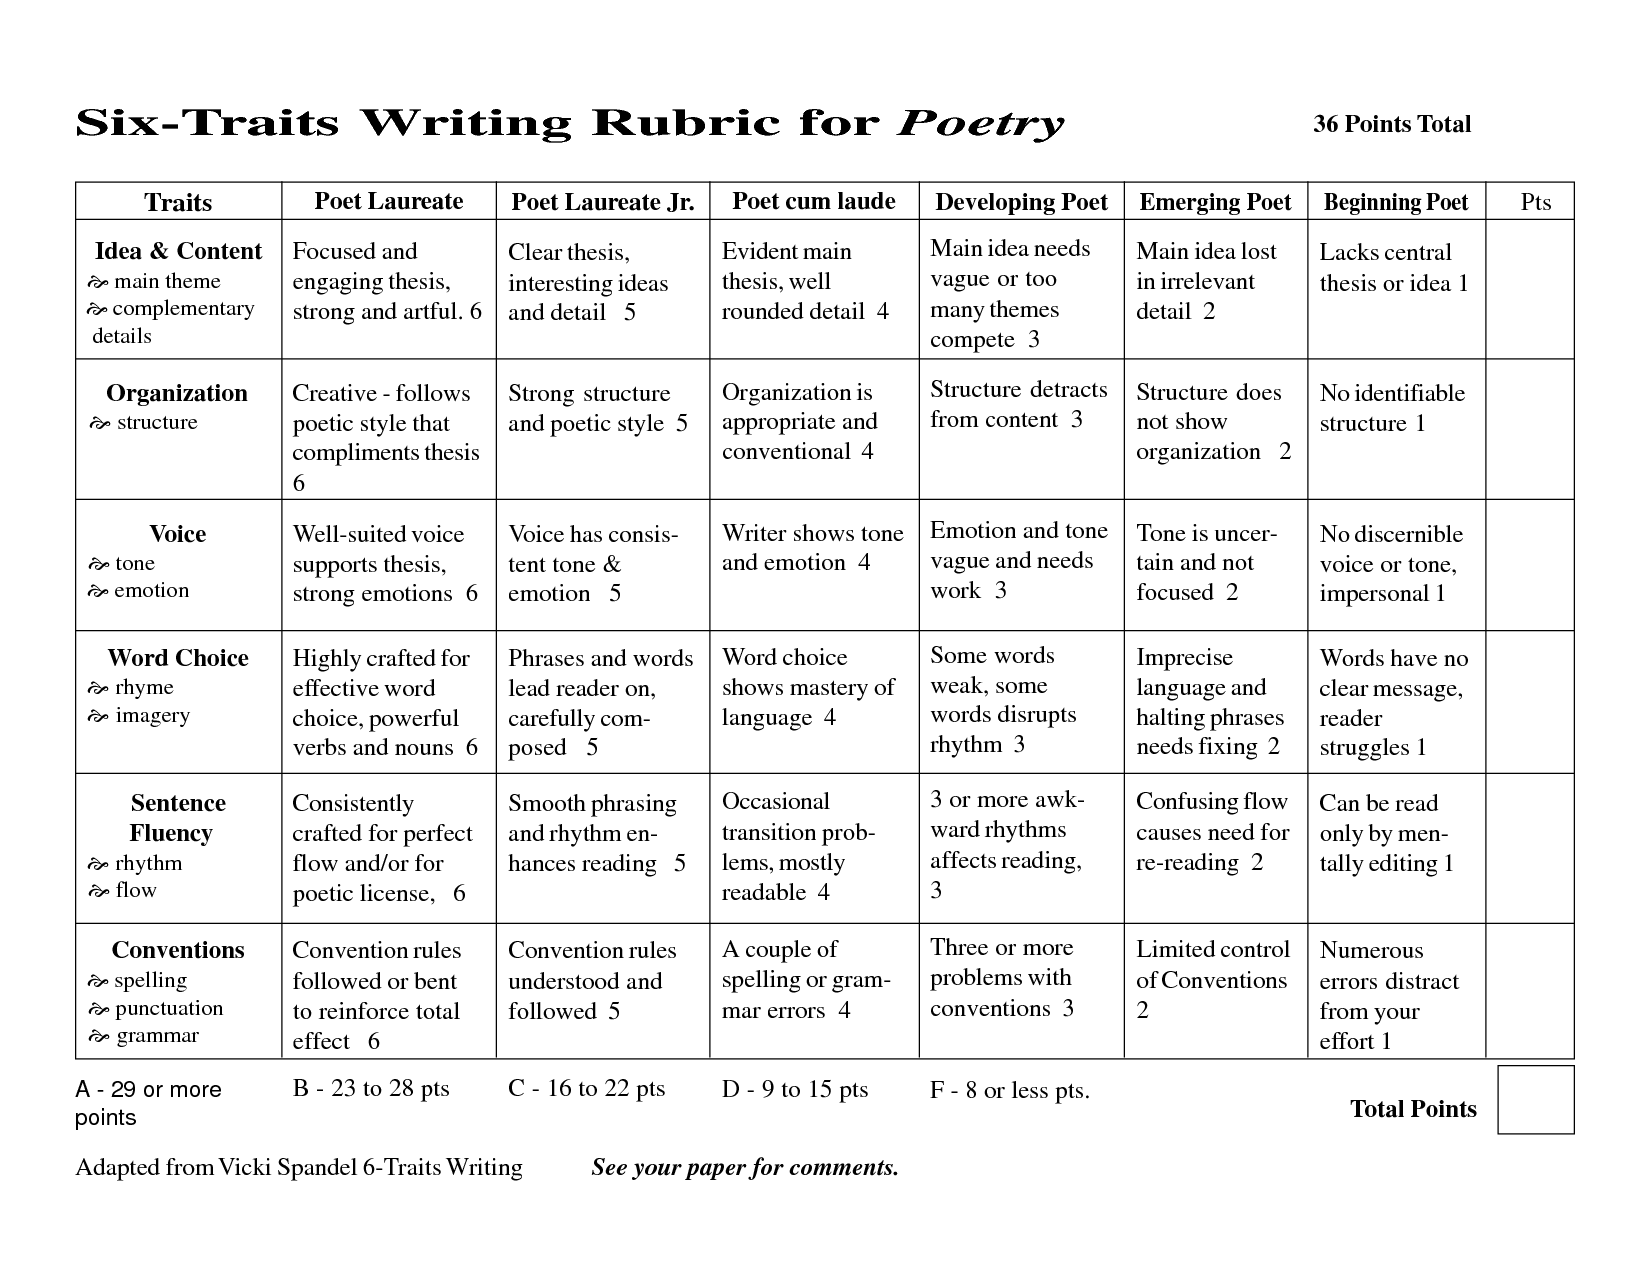 Cool Kids Write Consistency Is Key Writing Assessments And The Six Trait Writing Approach Writing Rubric Six Trait Writing Writing Assessment [ 1275 x 1650 Pixel ]